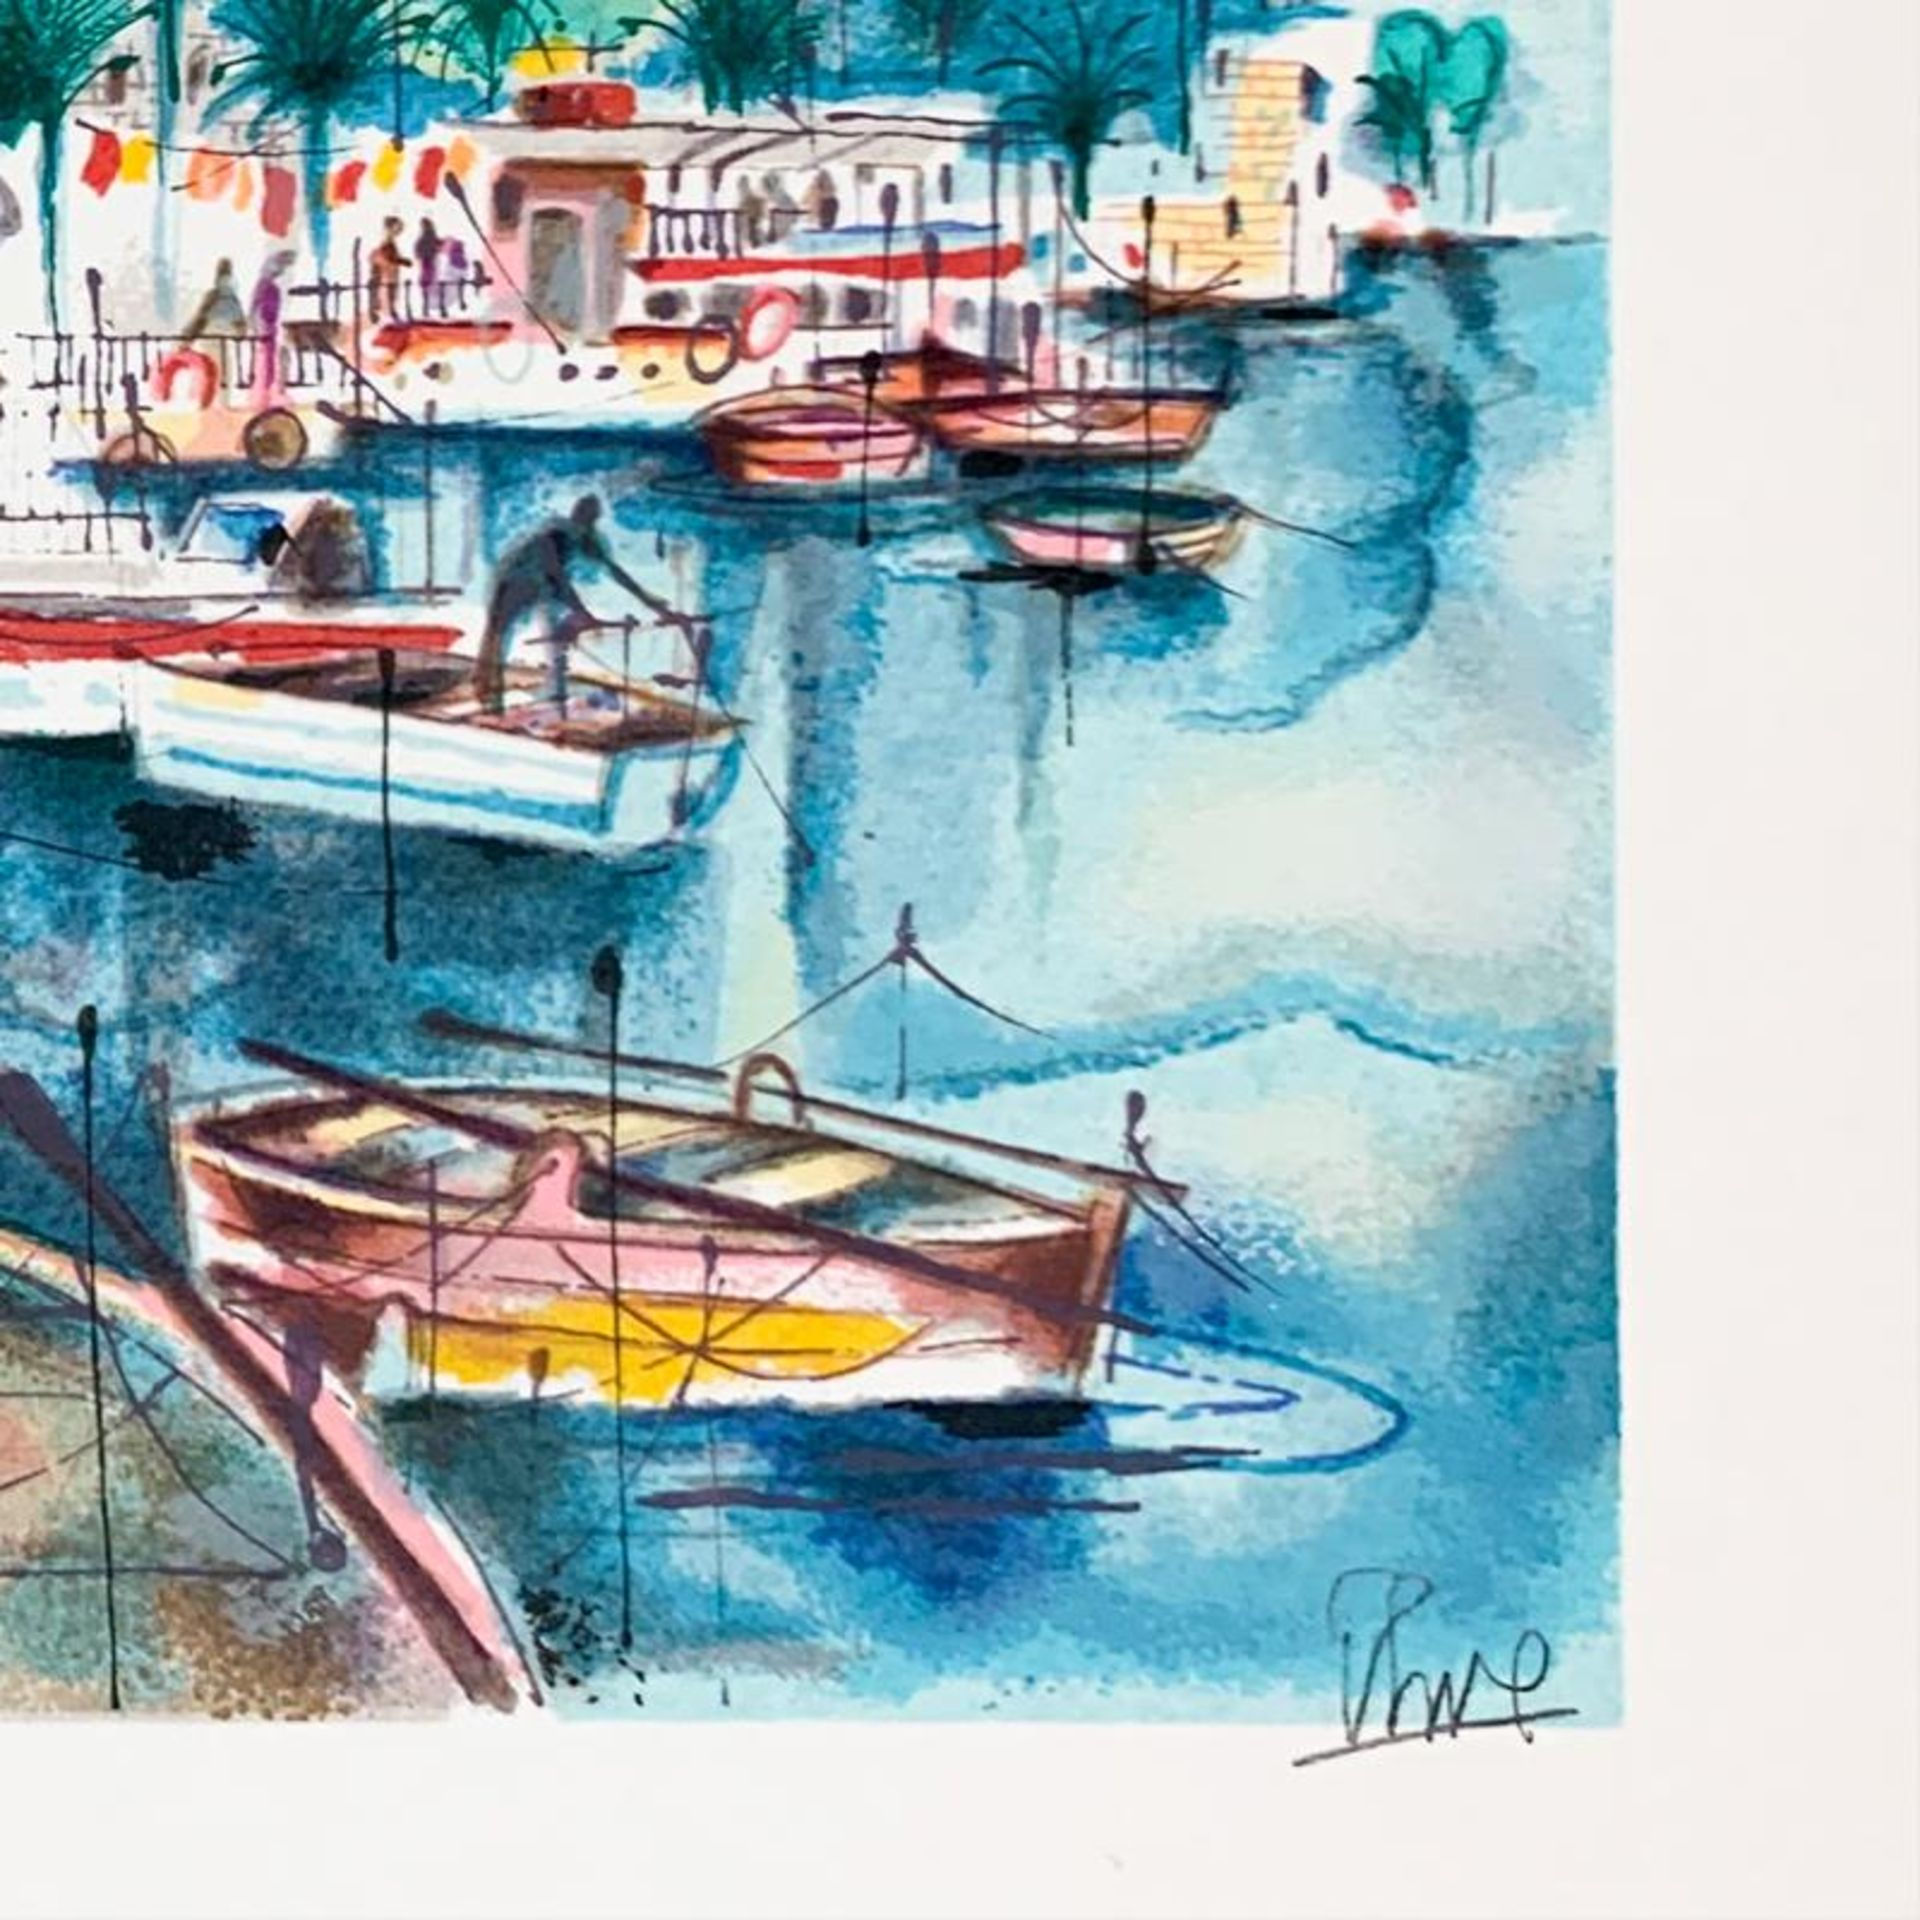 """Shmuel Katz (1926-2010), """"Tiberias"""" Hand Signed Limited Edition Serigraph on Pap - Image 2 of 2"""